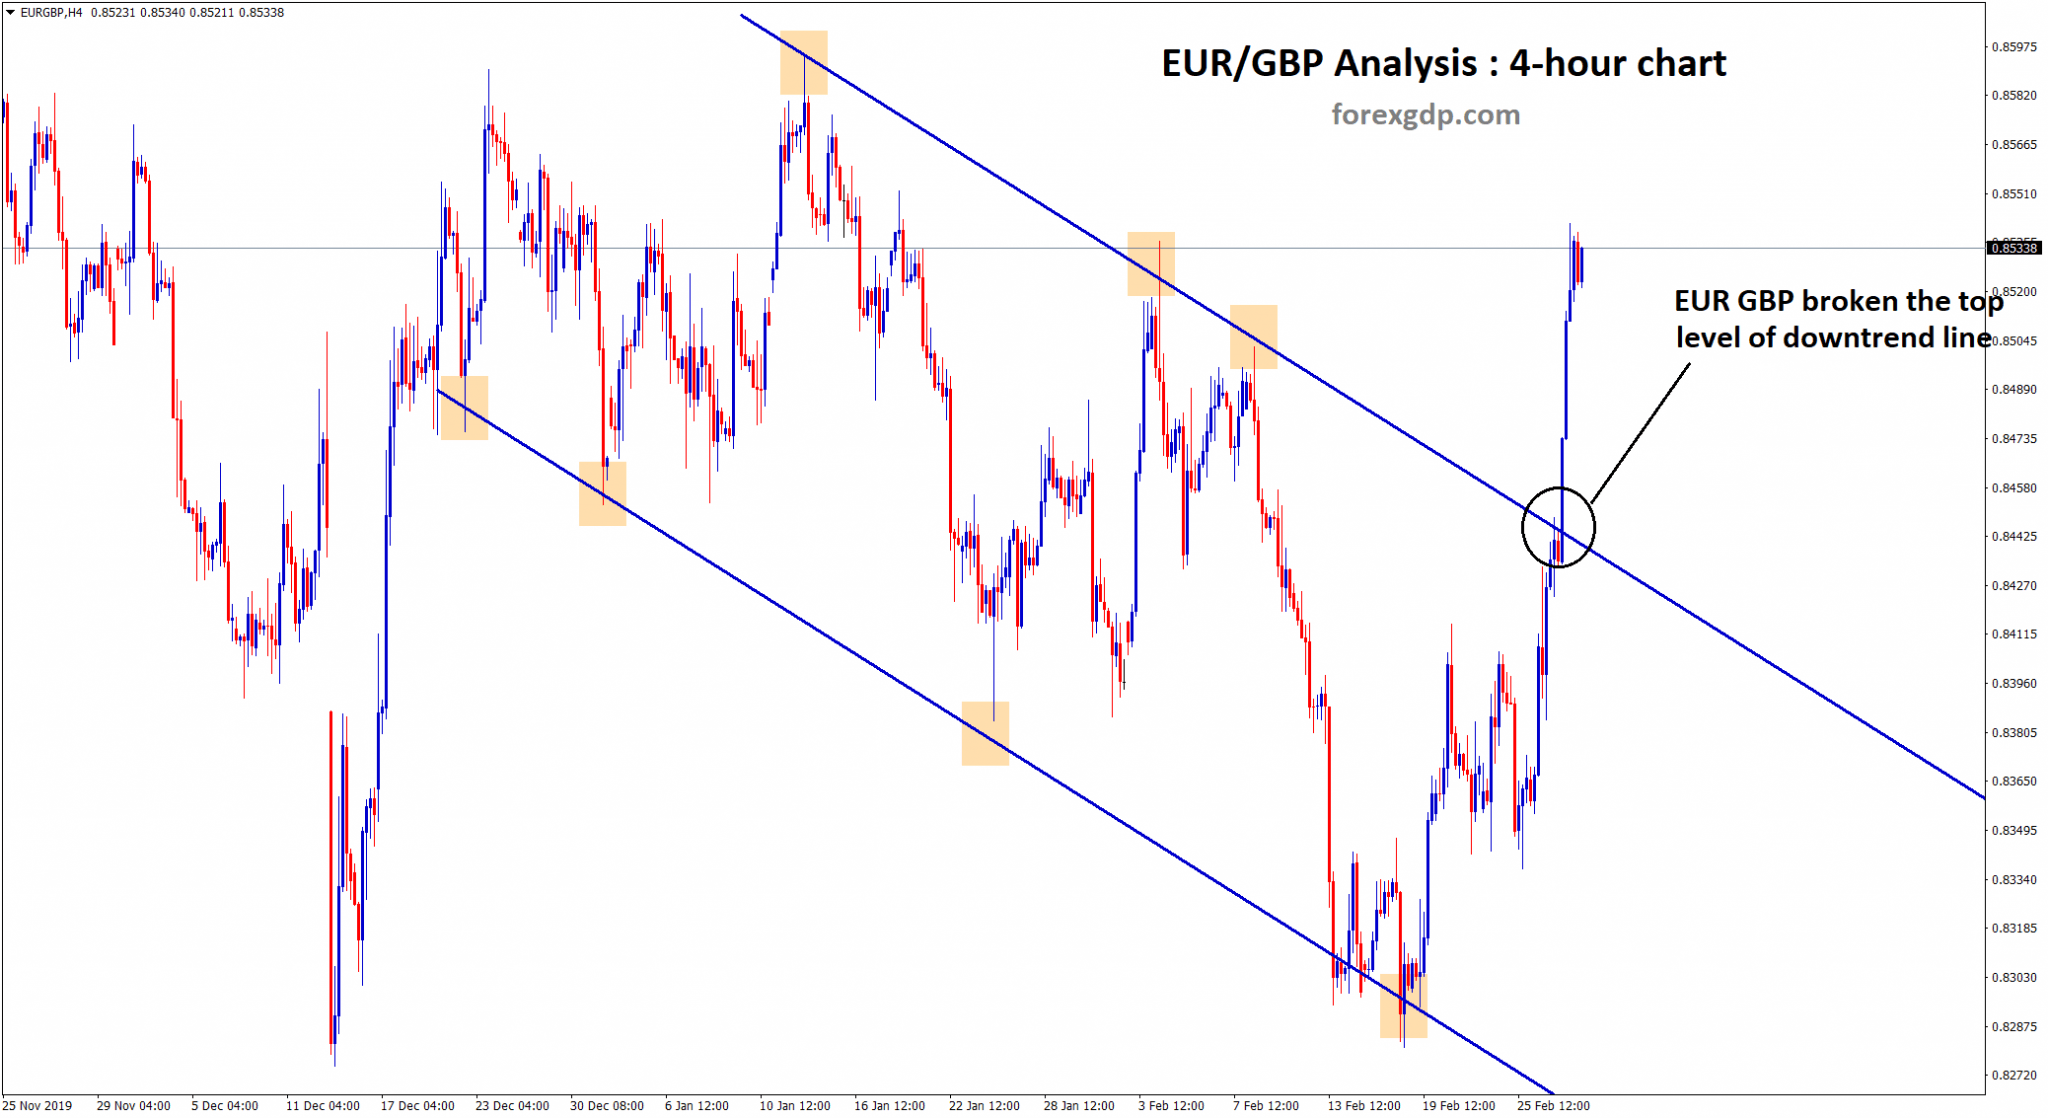 downtrend line of eur gbp breakout